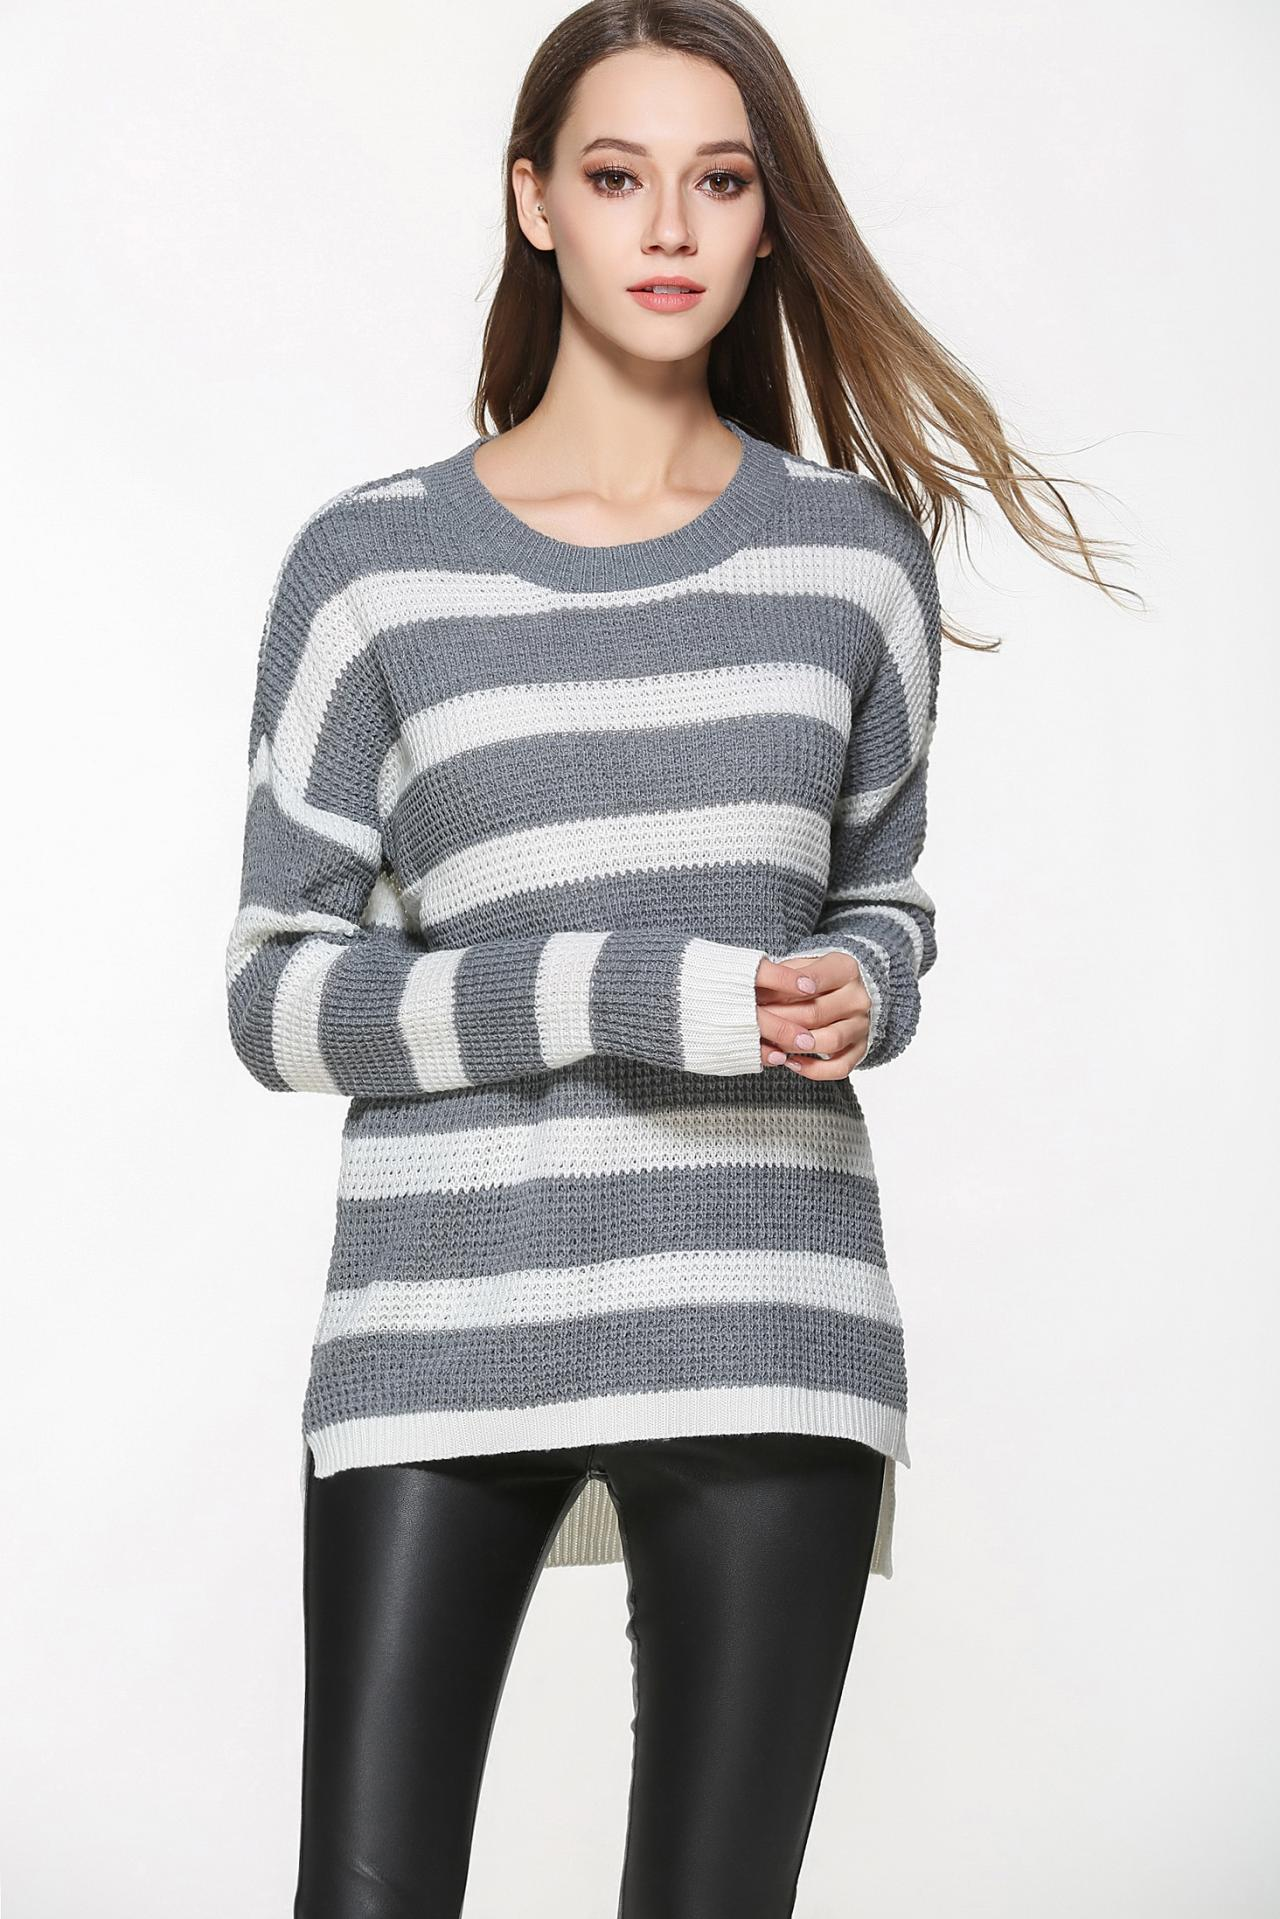 Grey and White Knit Crew Neck Long Cuffed Sleeves Sweater Featuring High Low Hem